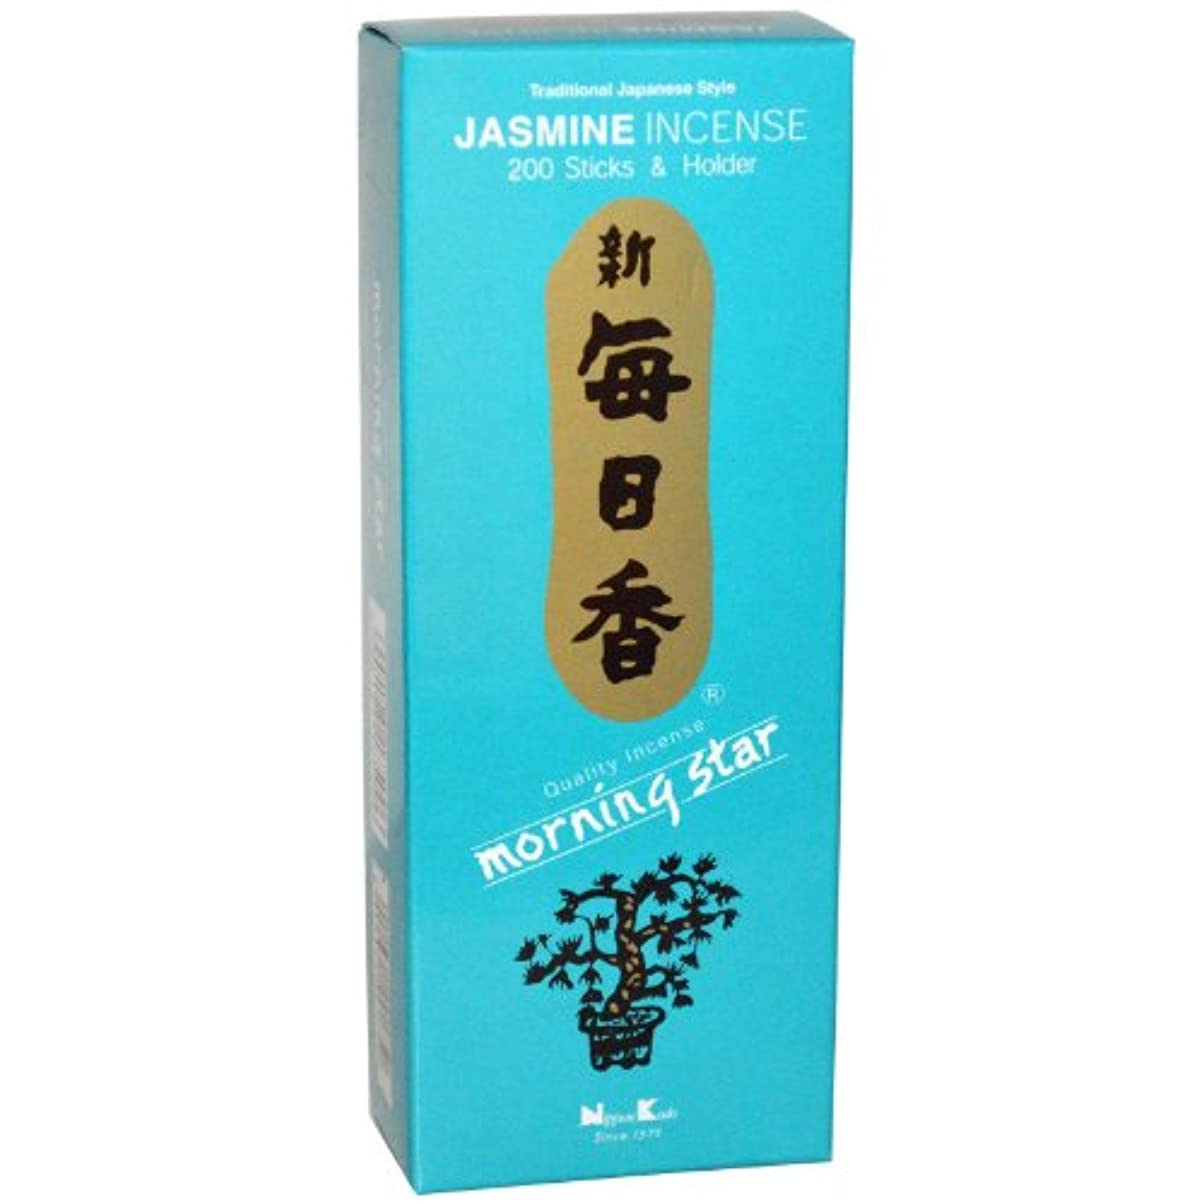 改修する音声学パッケージNippon Kodo, Morning Star, Jasmine Incense, 200 Sticks & Holder